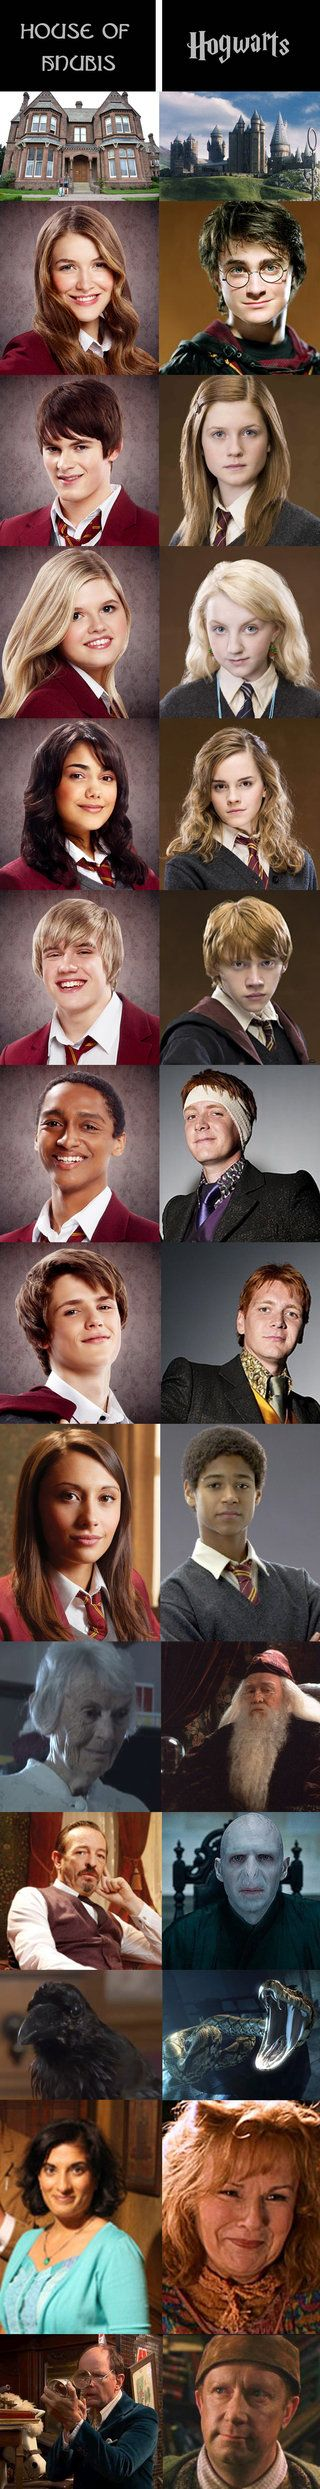 House of Anubis vs. Hogwarts by fruitloopcreamsoda on deviantART